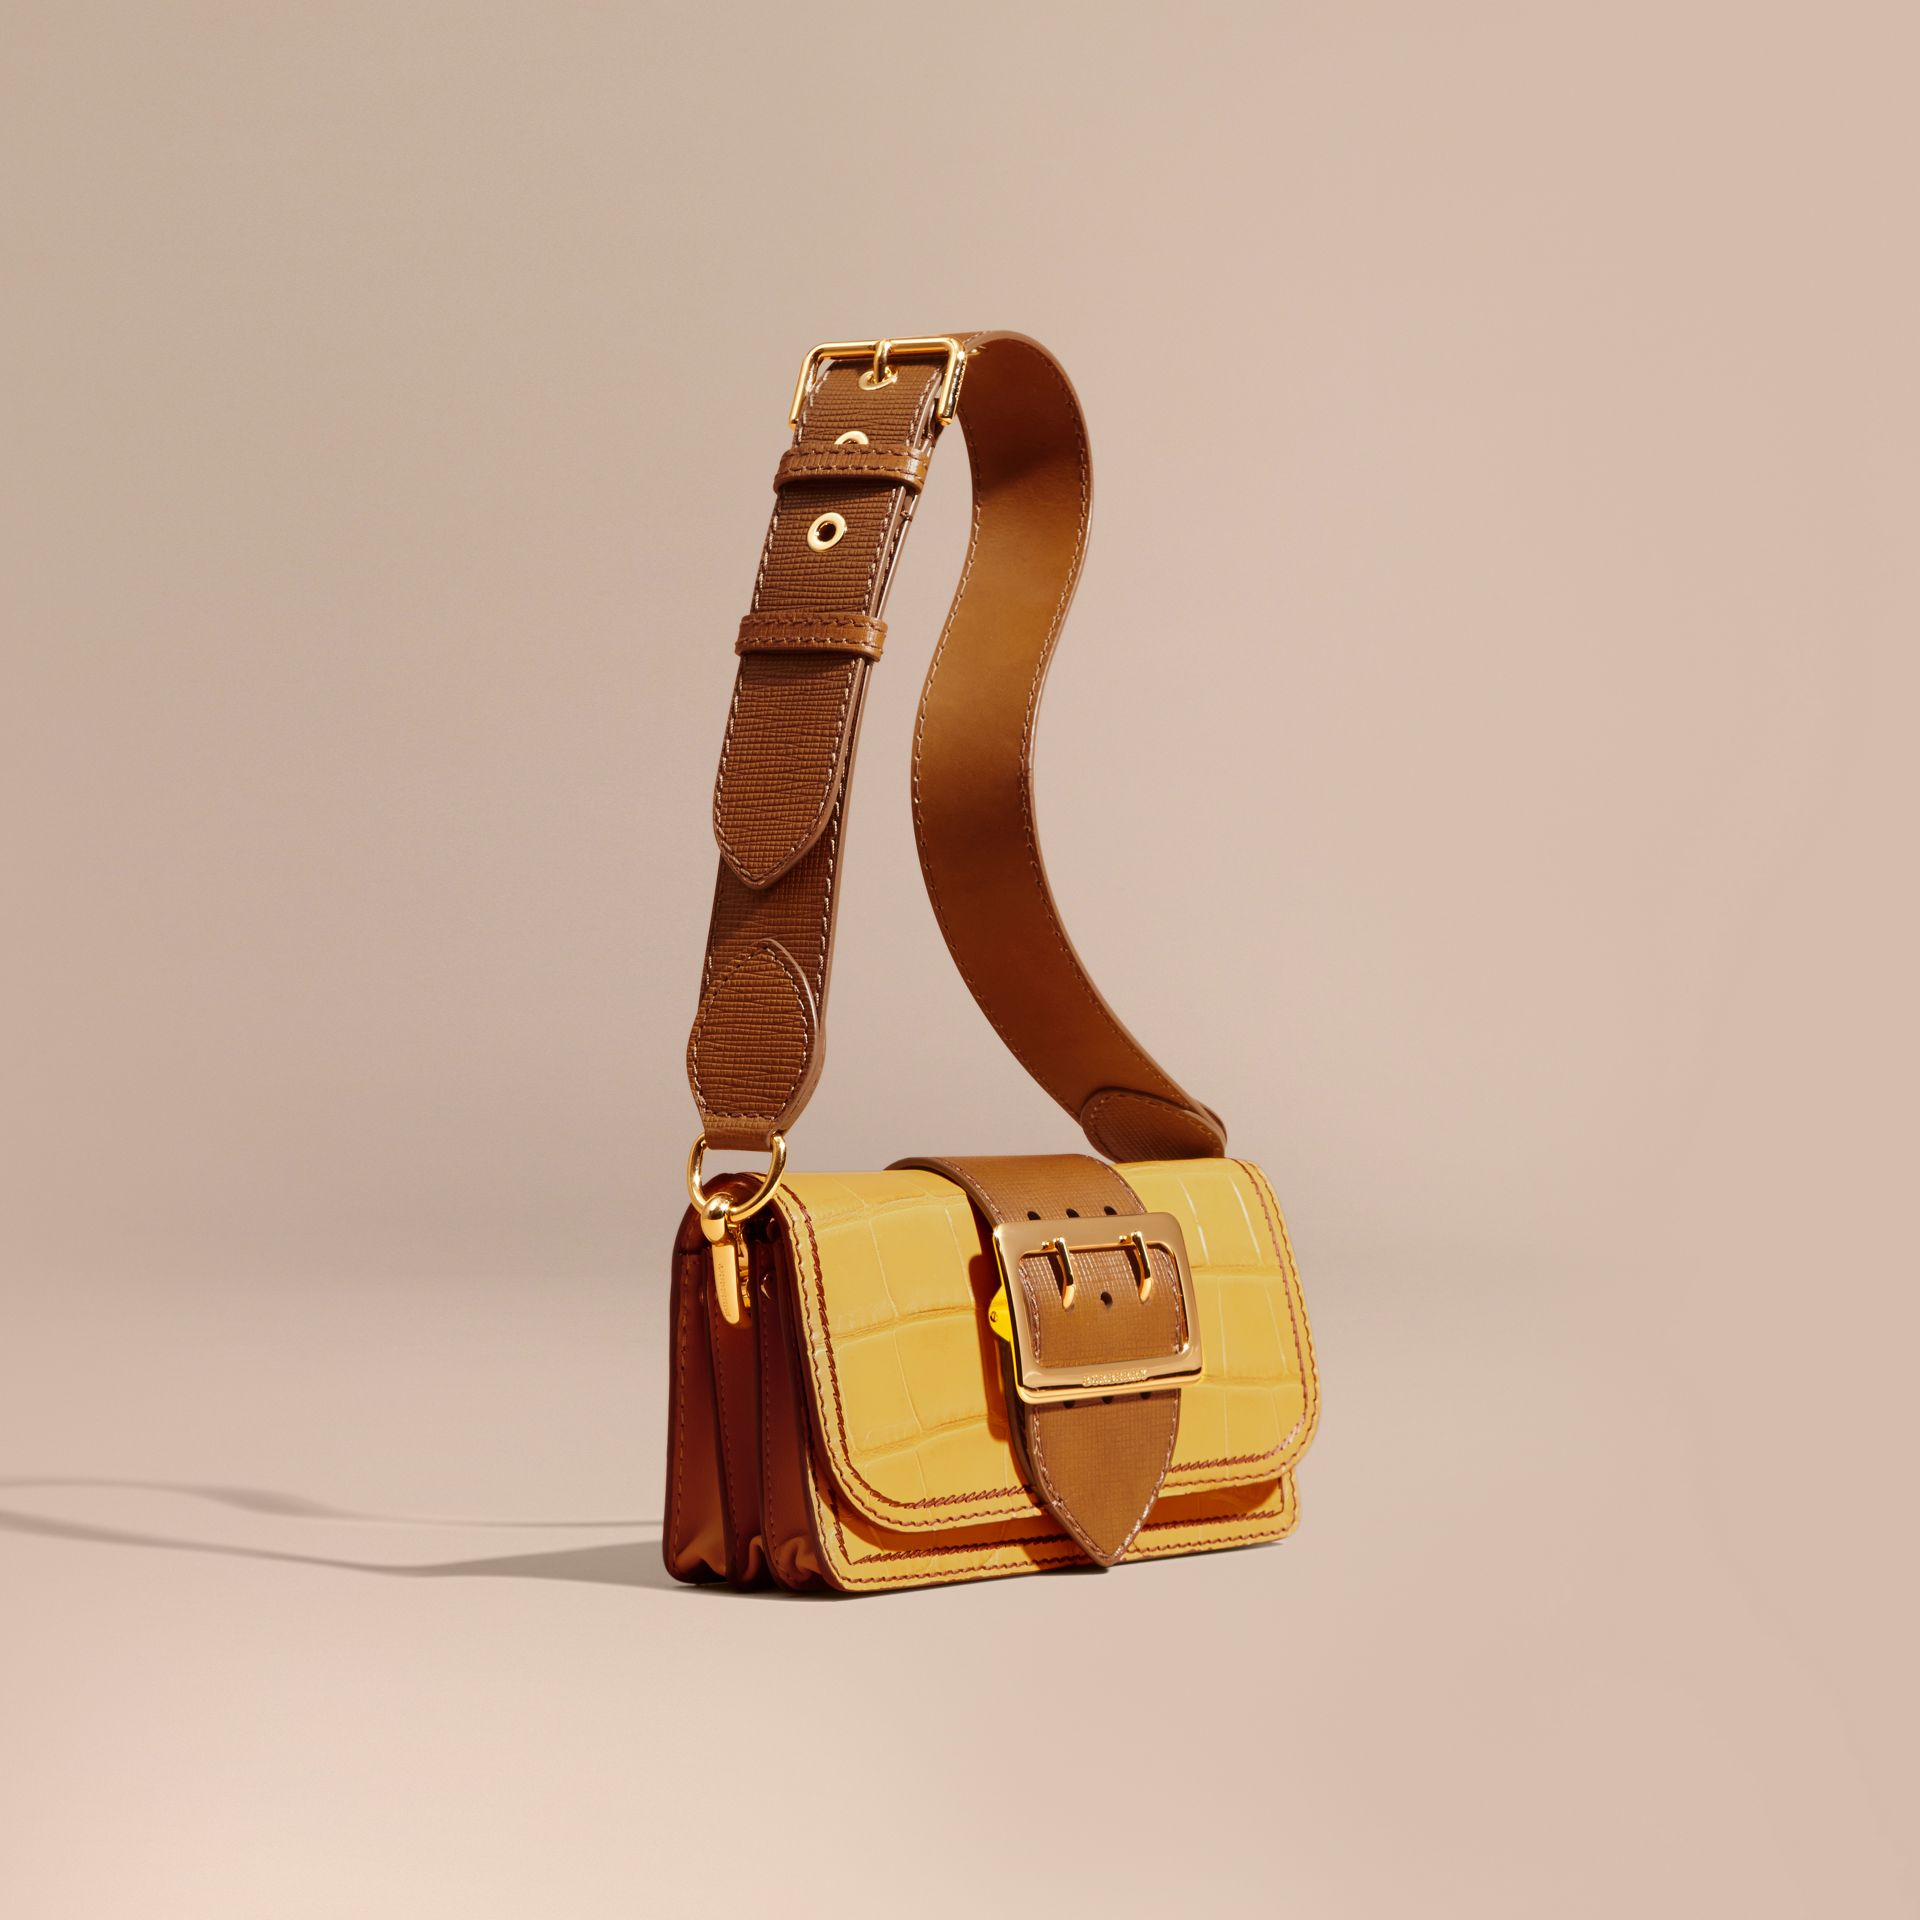 Citrus yellow / tan The Small Buckle Bag in Alligator and Leather Citrus Yellow / Tan - gallery image 1